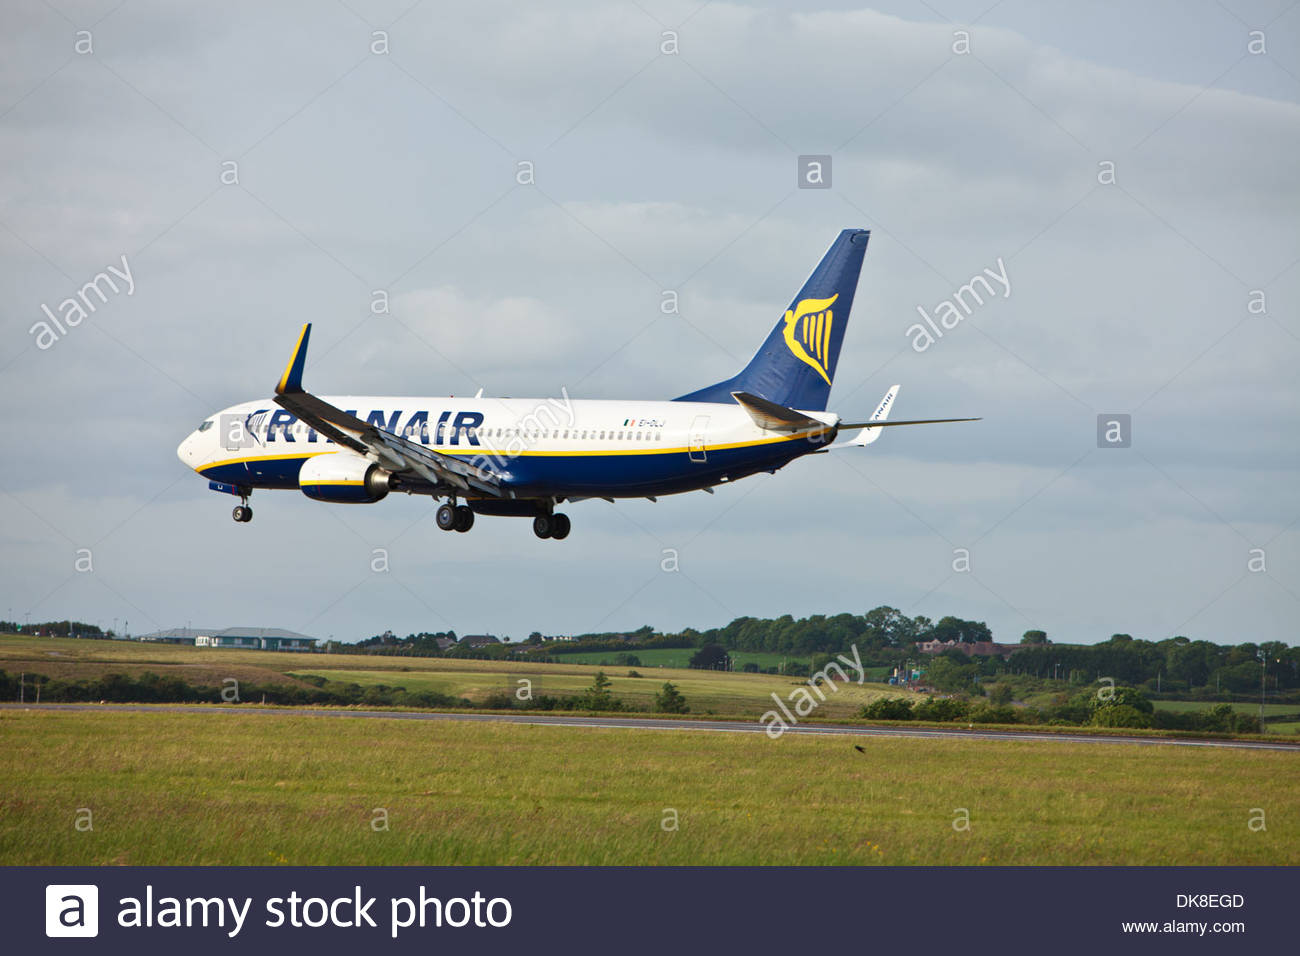 Ryanair Boeing 737 with fuel saving winglets coming into land at Cork Airport, Cork, Ireland - Stock Image